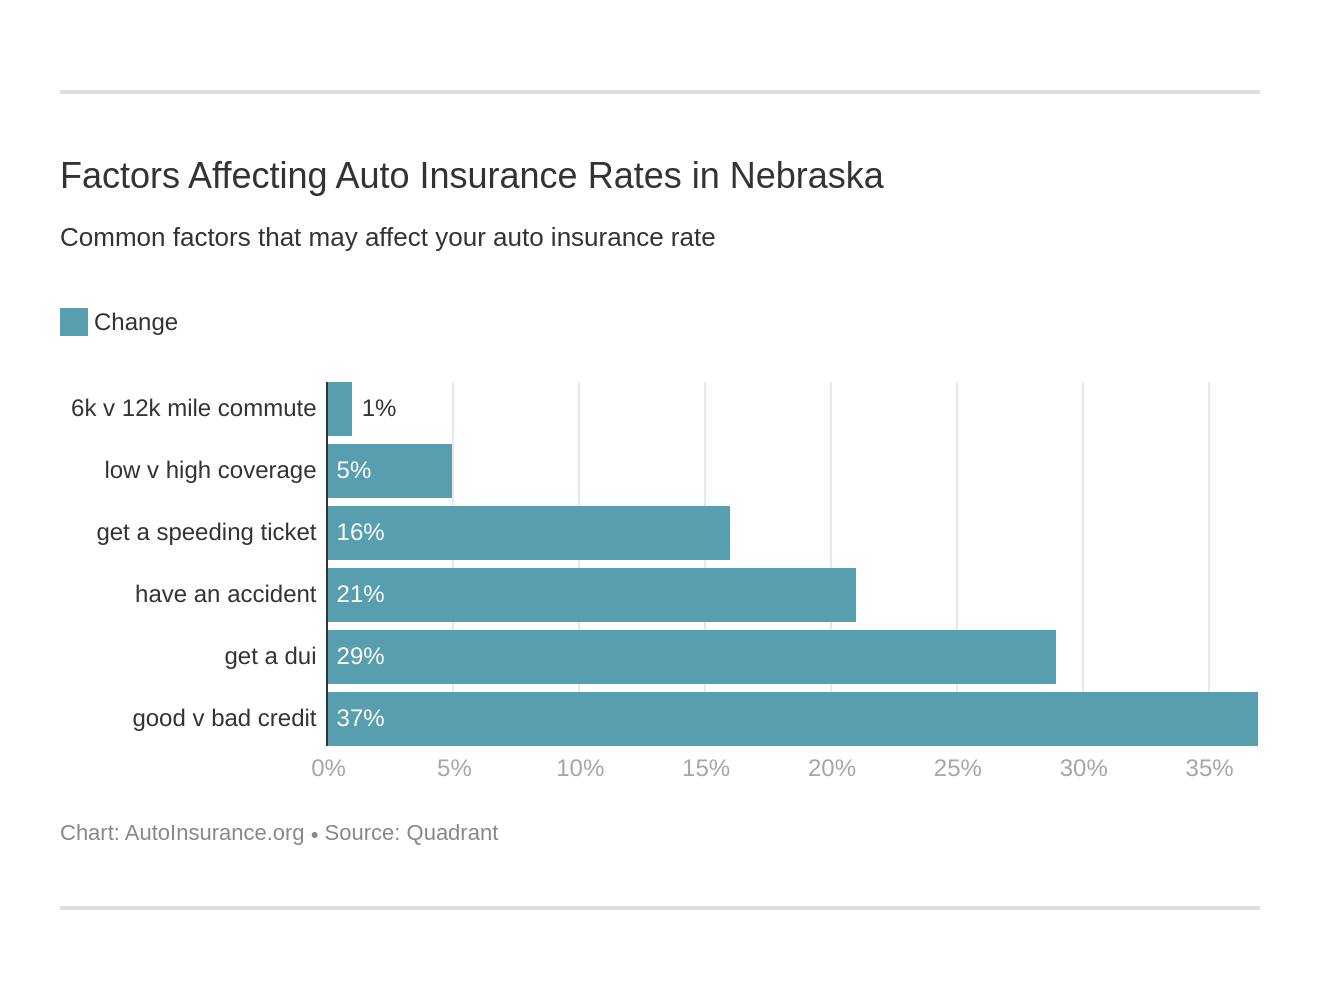 Factors Affecting Auto Insurance Rates in Nebraska